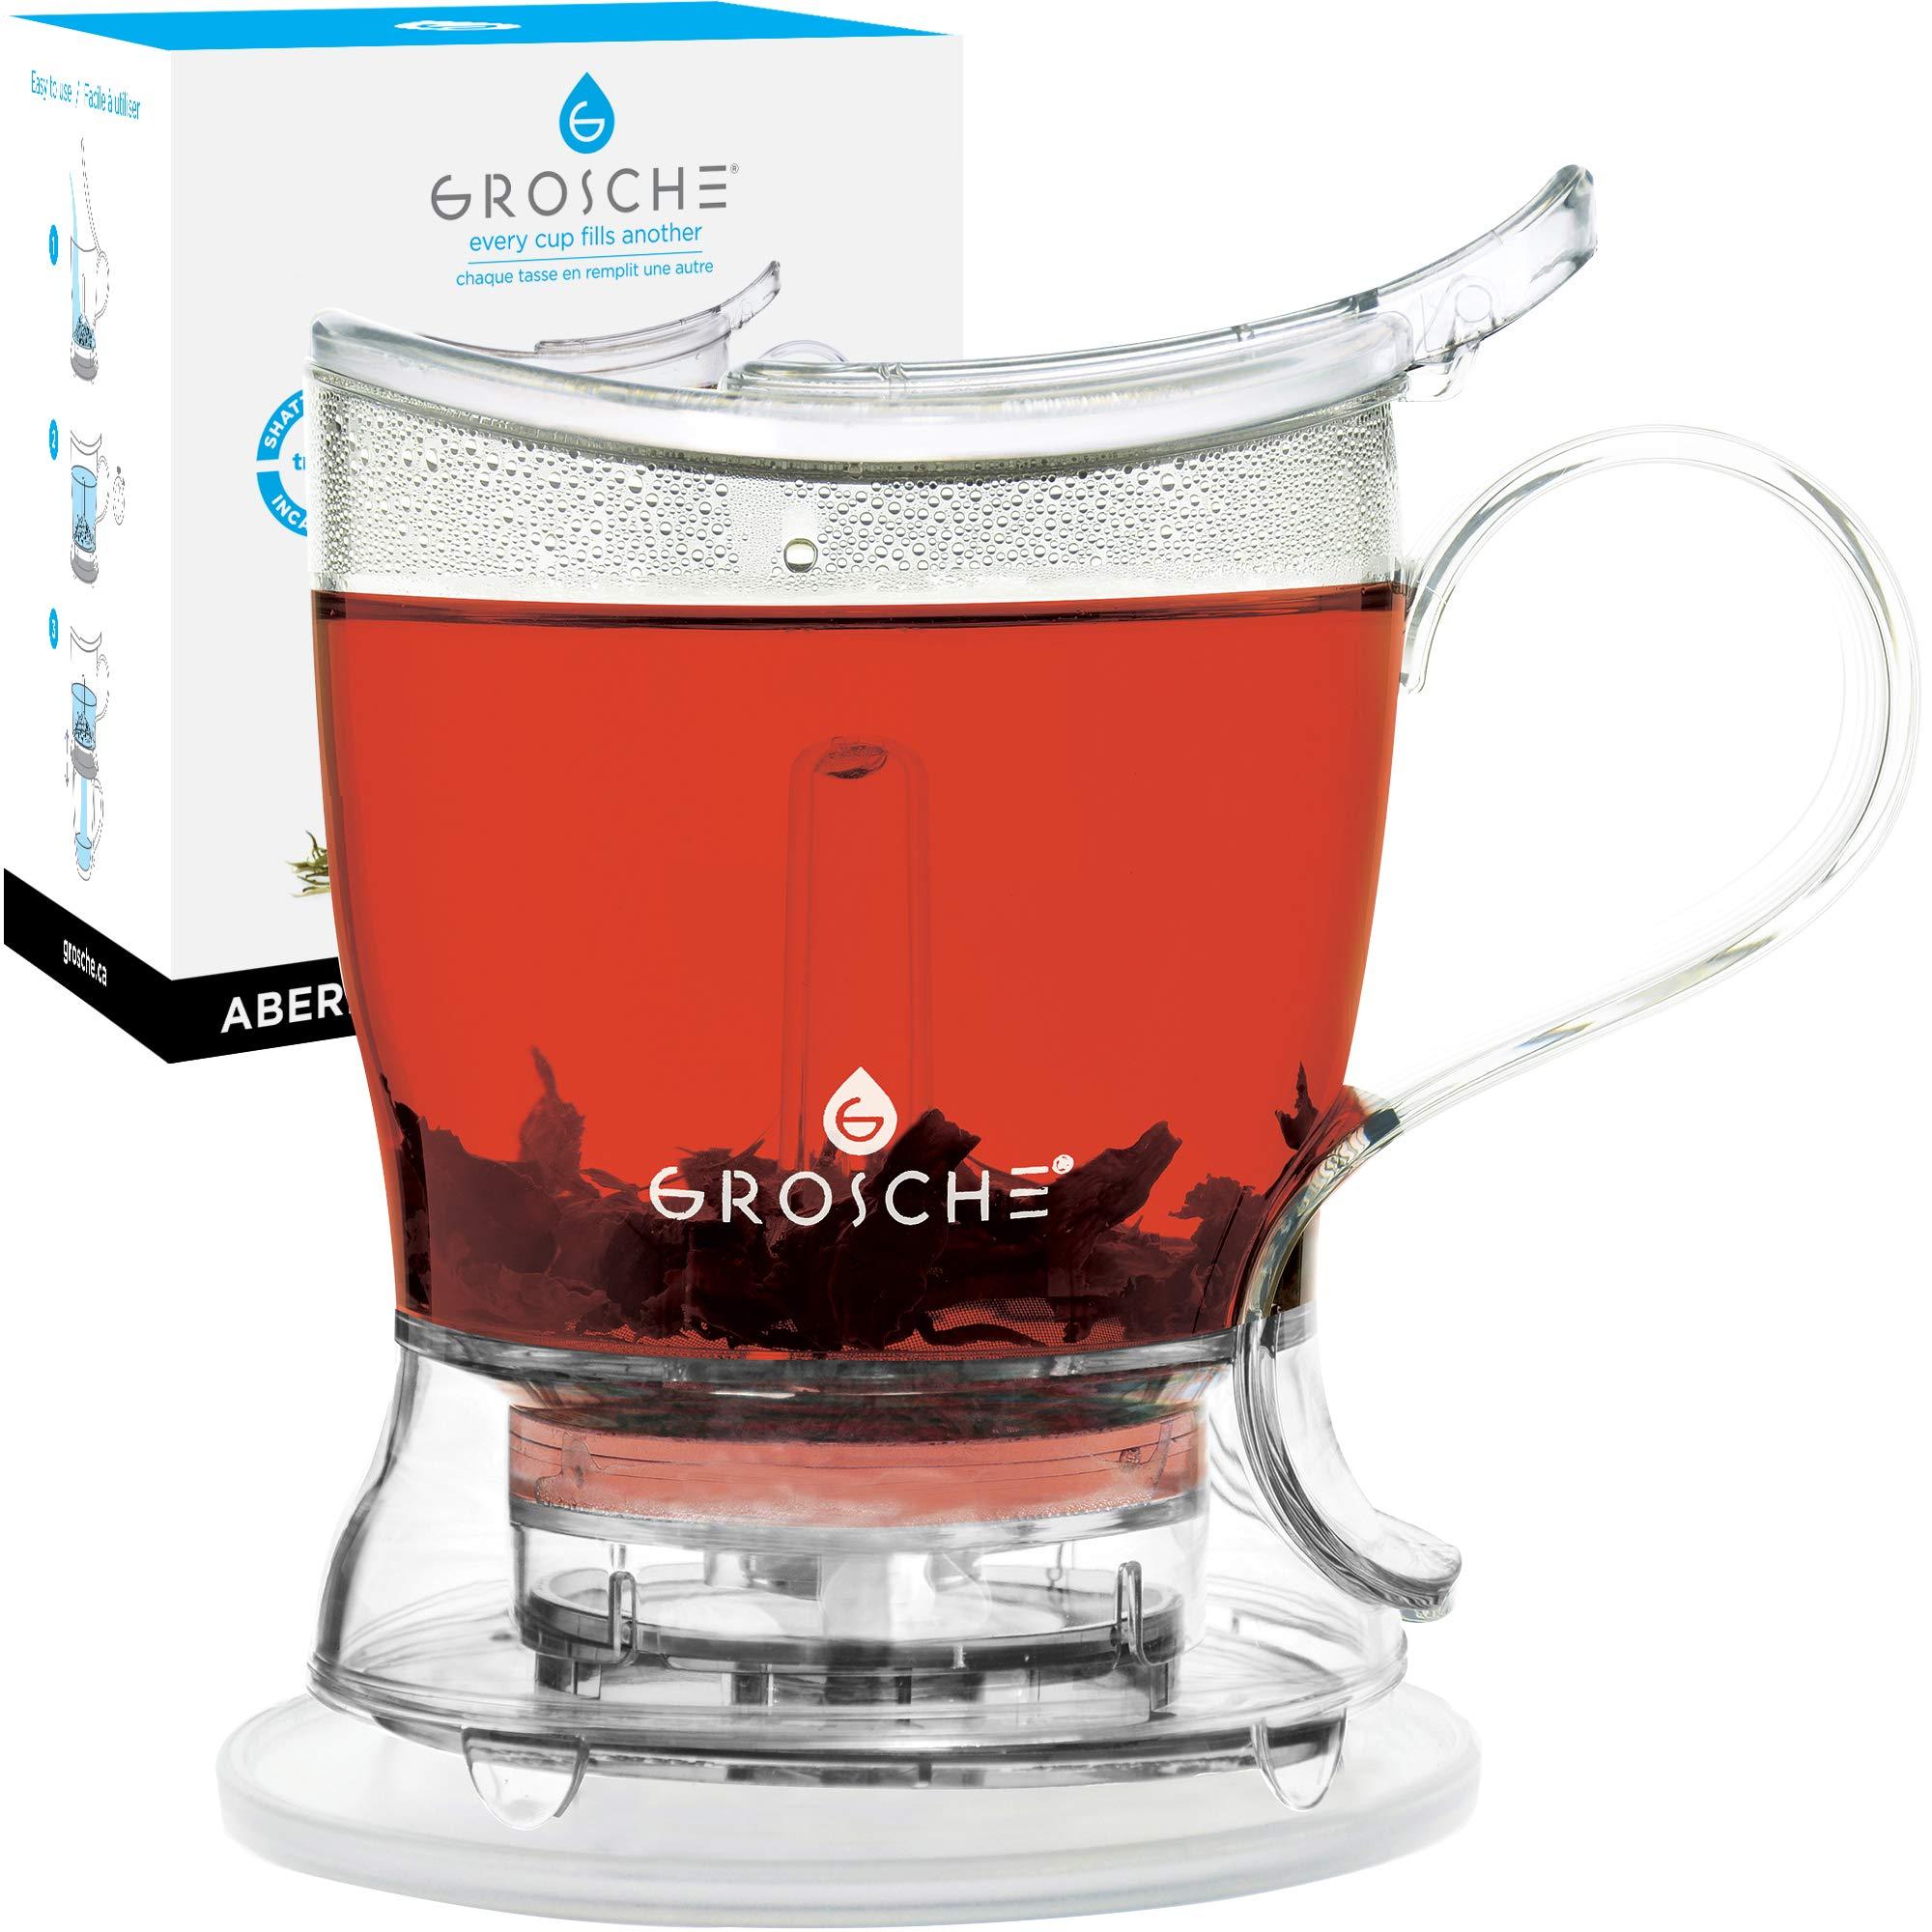 GROSCHE Aberdeen PERFECT TEA MAKER set with coaster, Tea Steeper, Teapot, Tea Infuser, 17.7 oz. 525 ml, EASY CLEAN Steeper, BPA-Free, NO DRIPS! by GROSCHE